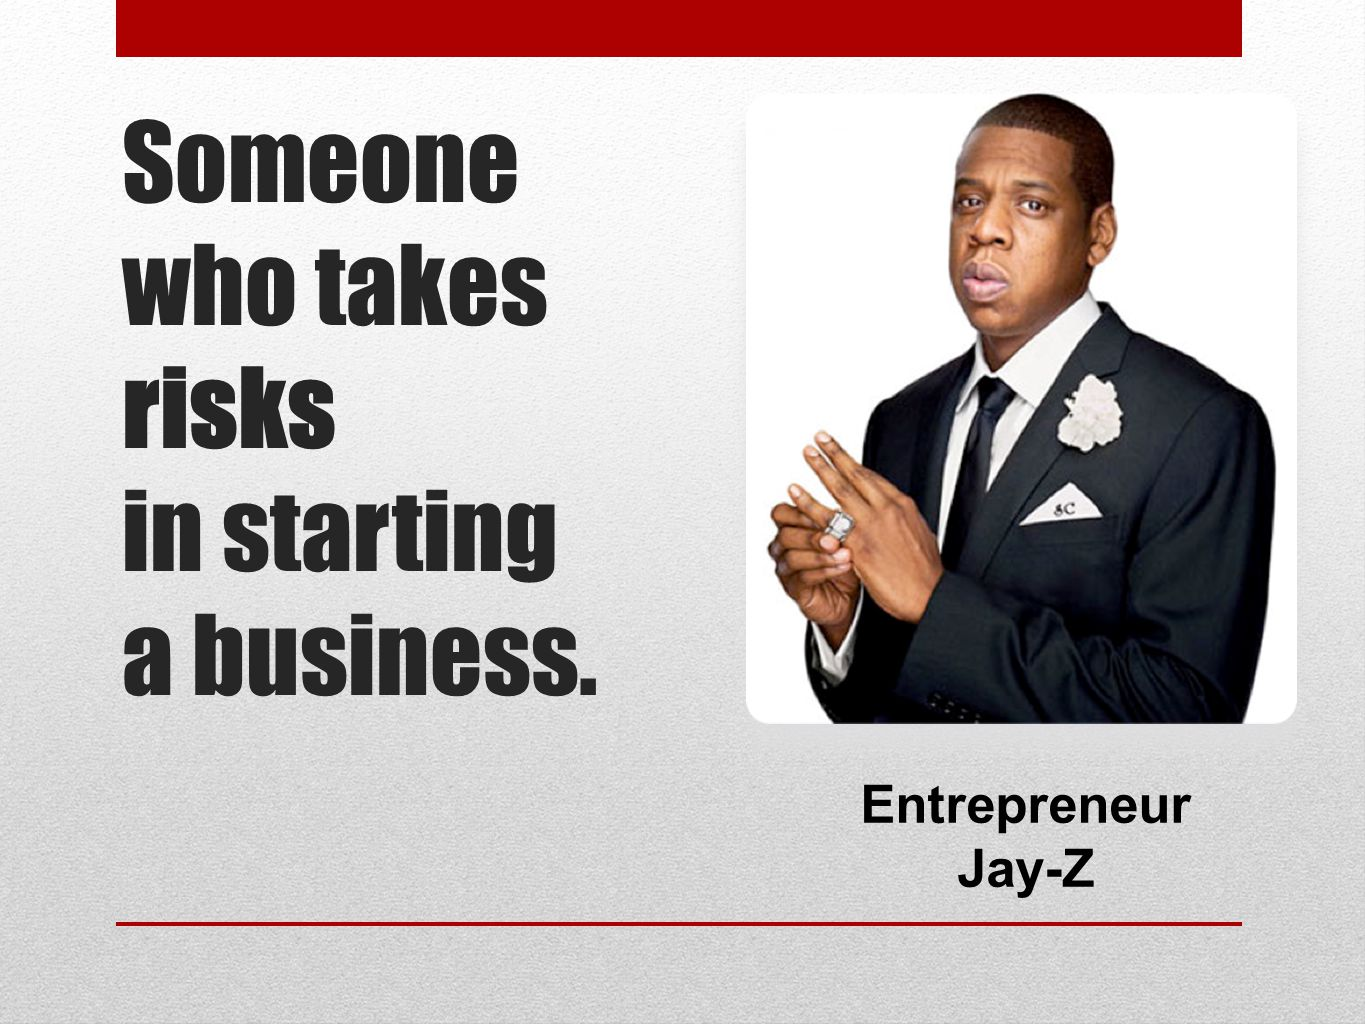 Someone who takes risks in starting a business.